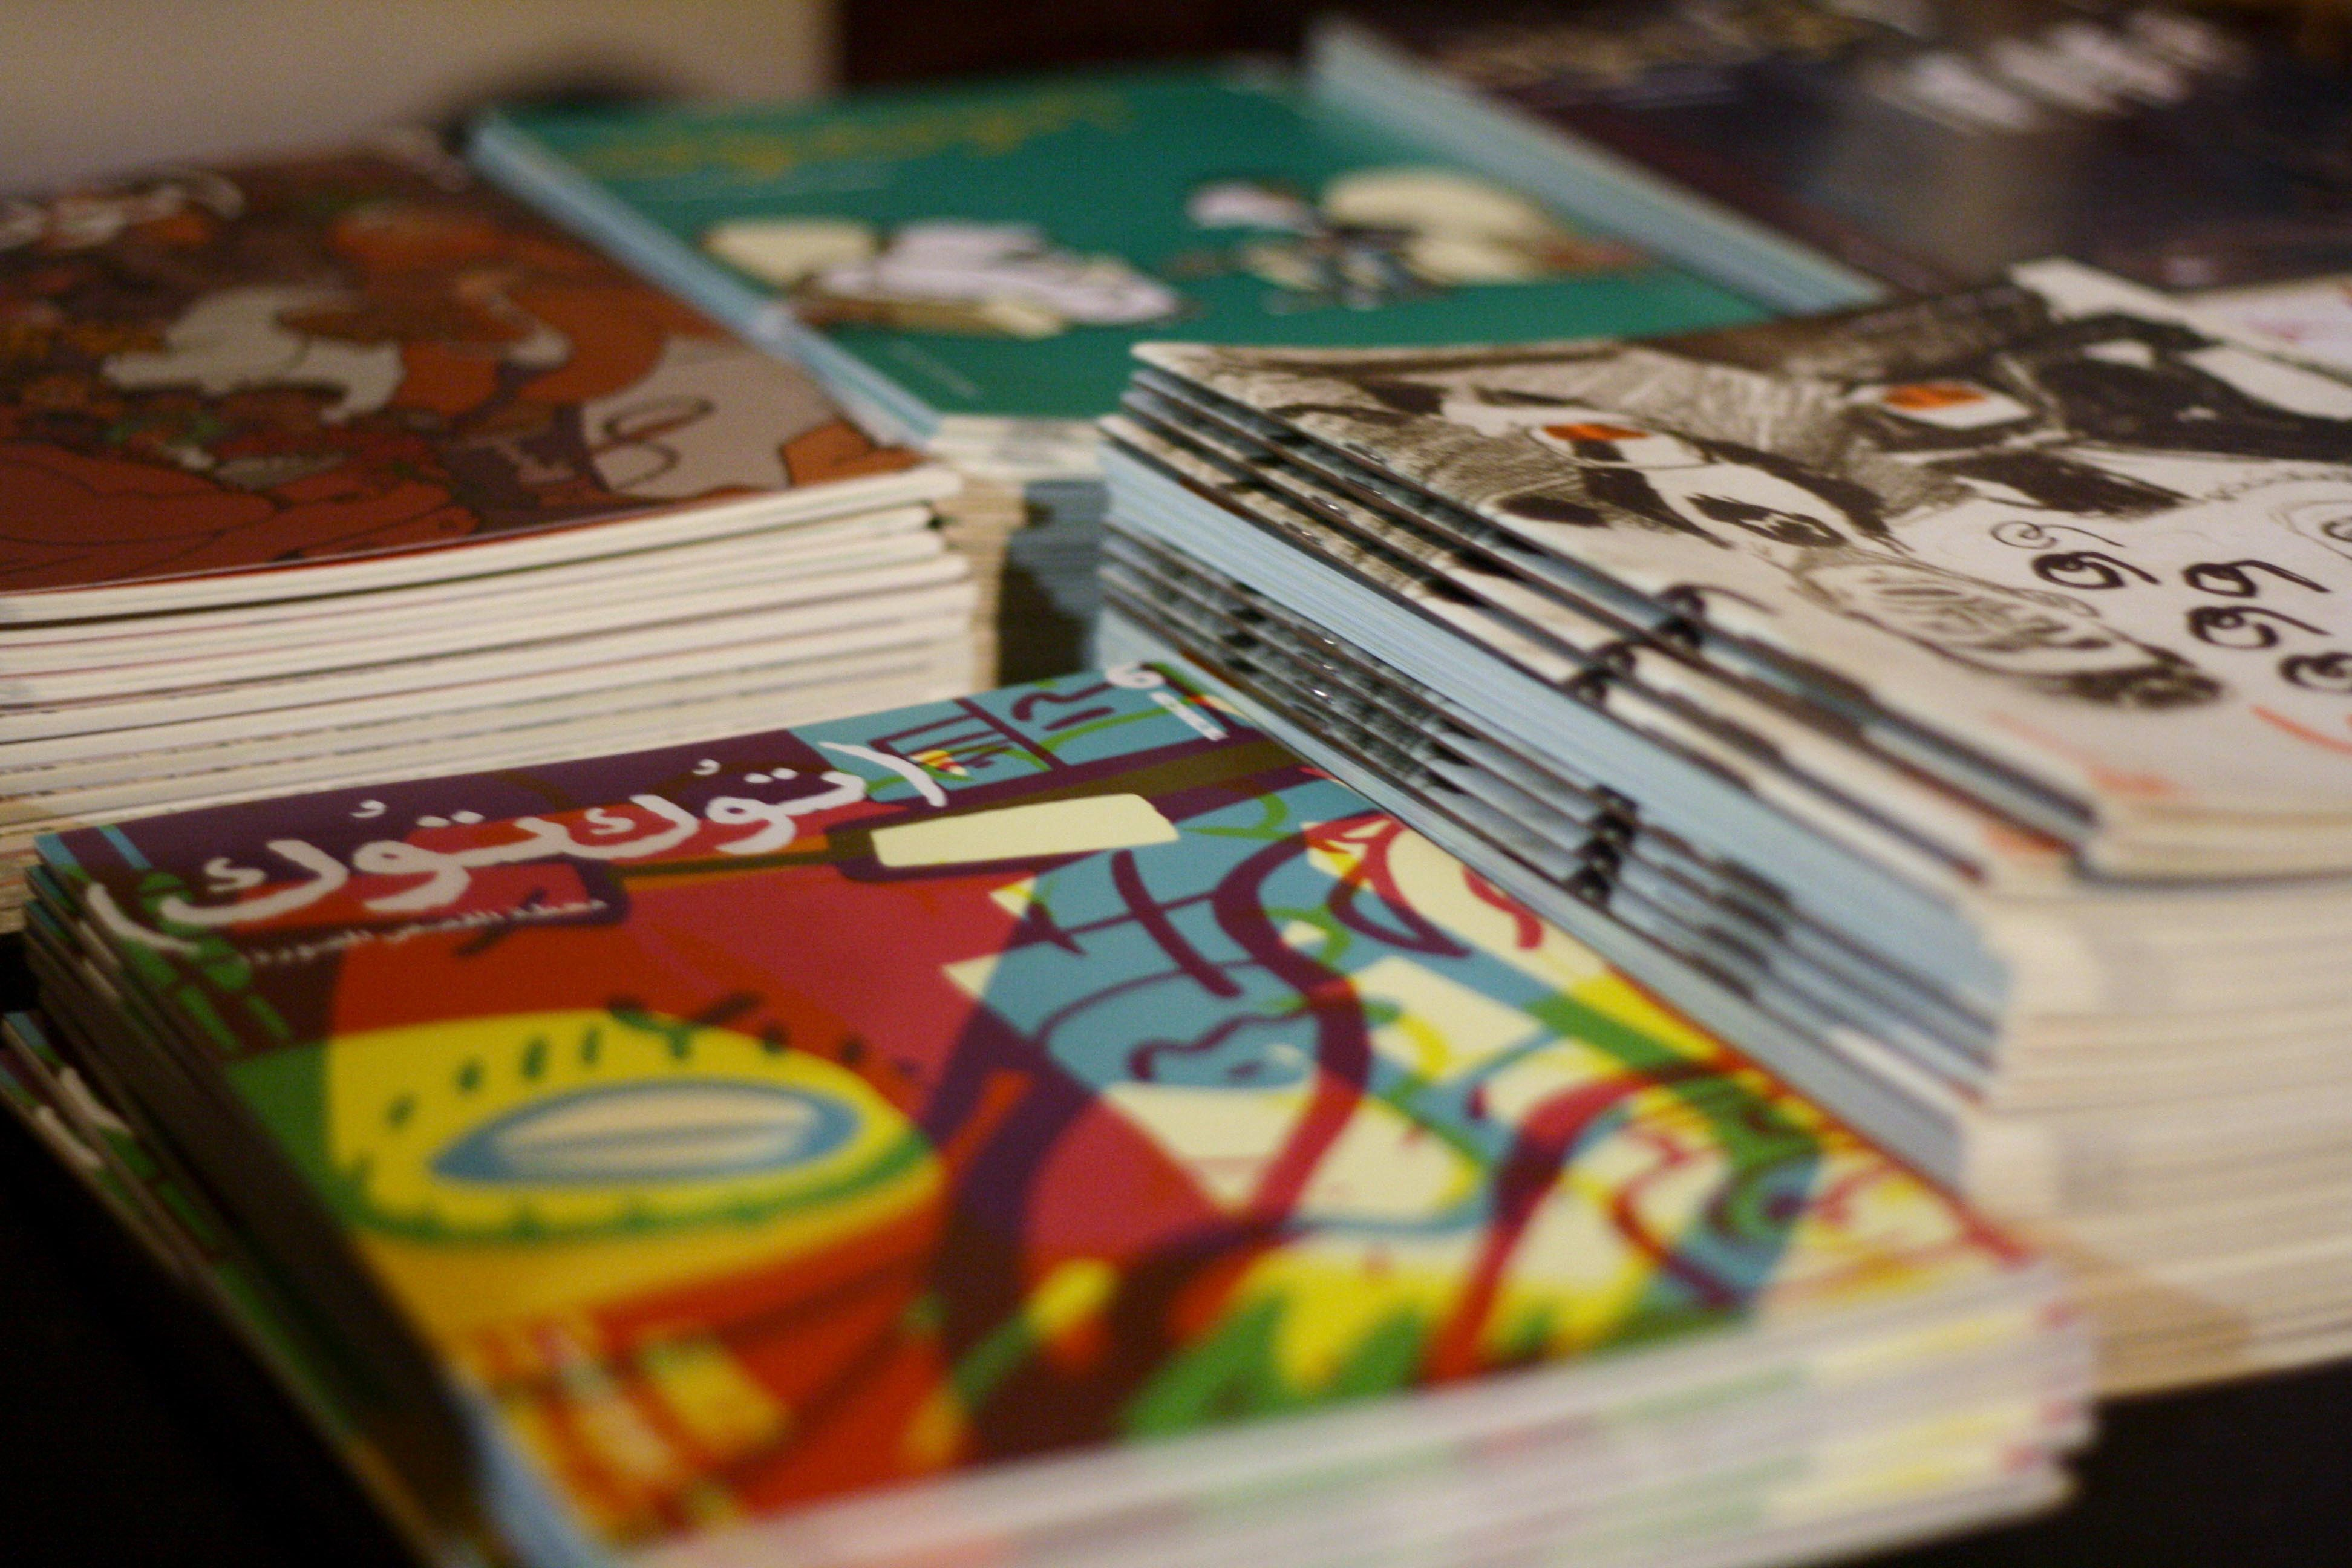 Various editions of TokTok, one of Egypt's Arabic comic books